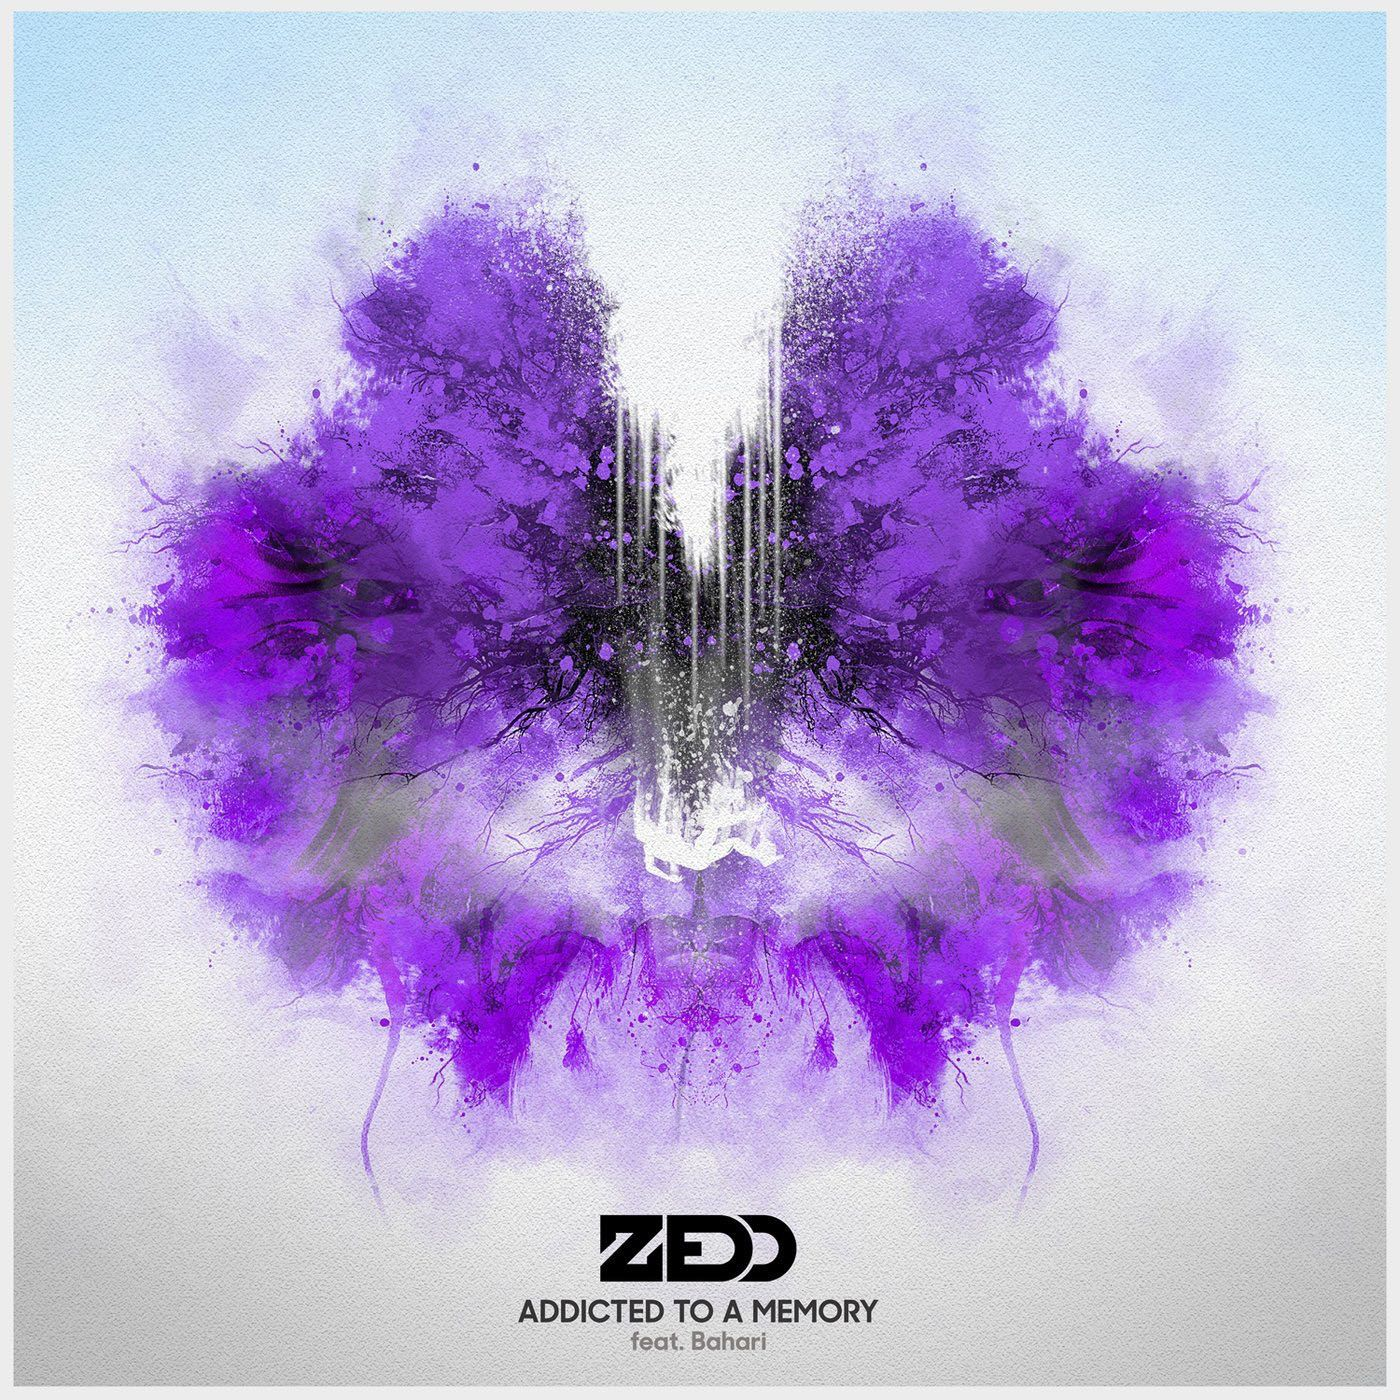 Zedd ~ Addicted to a Memory (Single) | AWESOME ARTWORKS ... Zedd Find You Album Cover